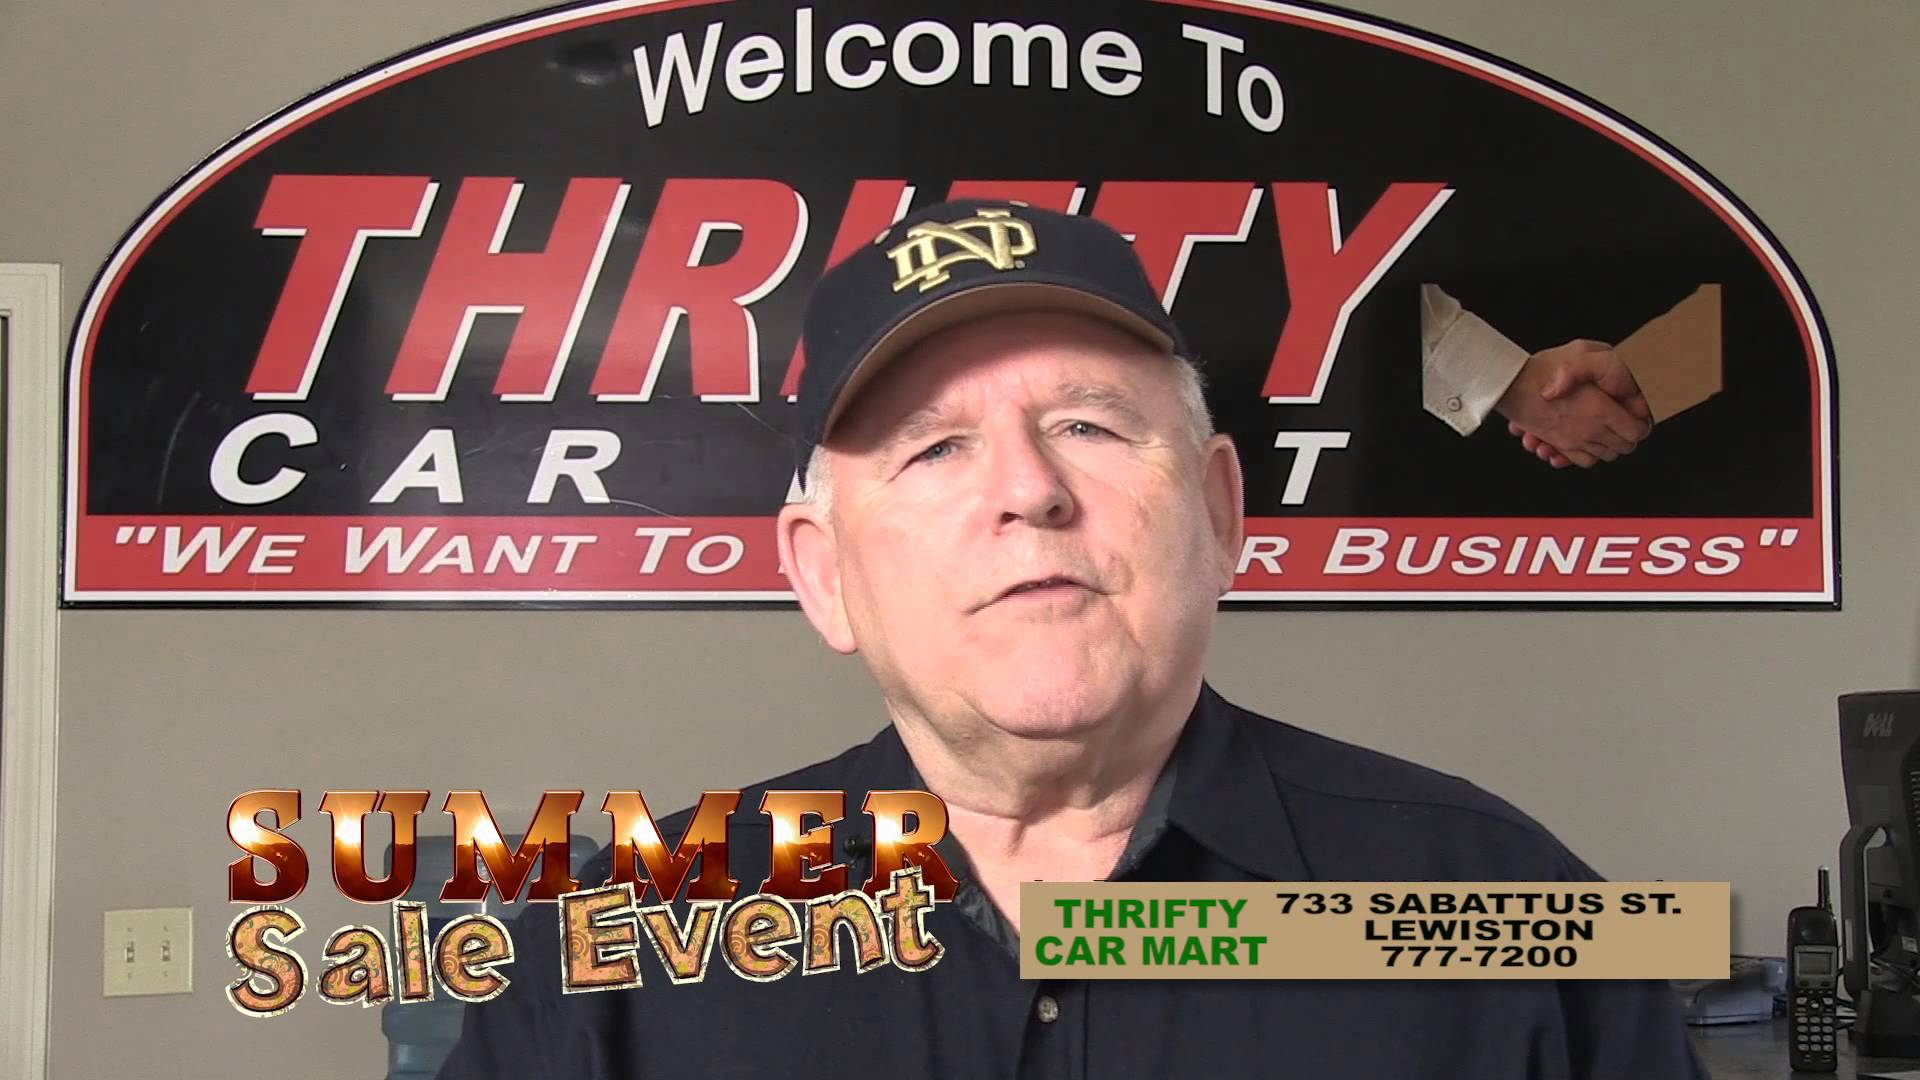 THRIFTY CAR MART SUMMER SALE 514 RMVP190A HD